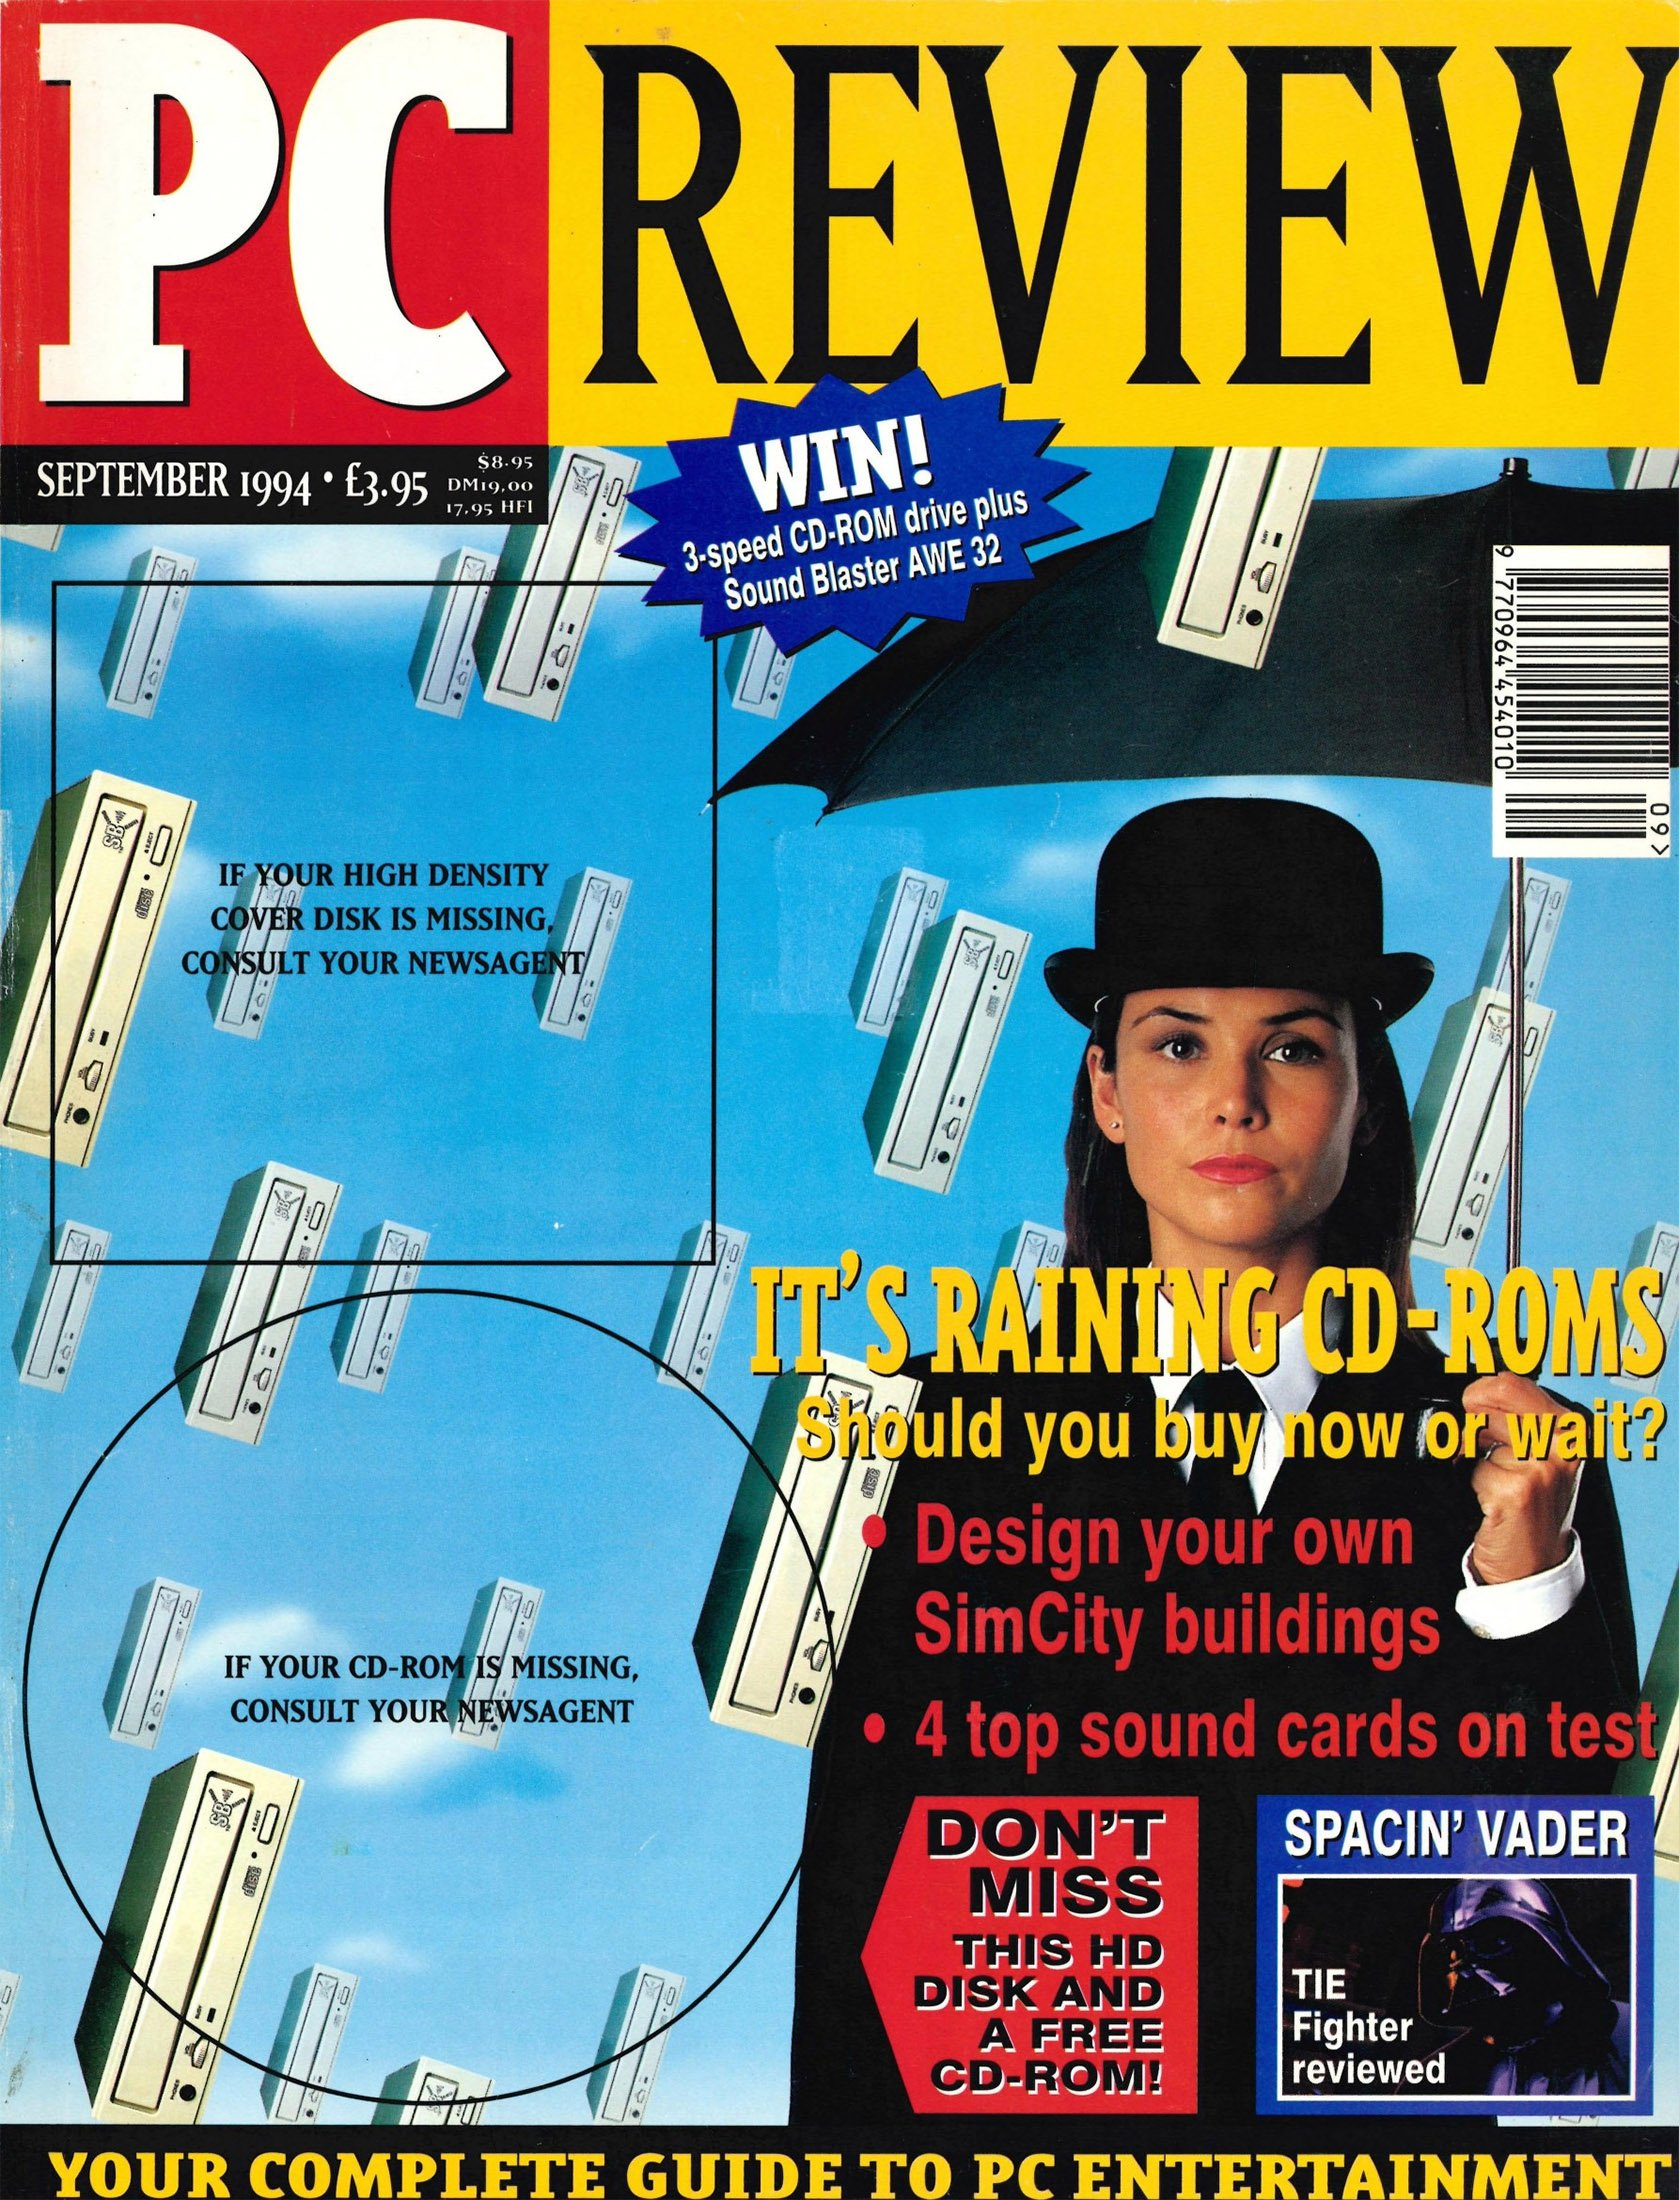 PC Review Issue 35 (September 1994)